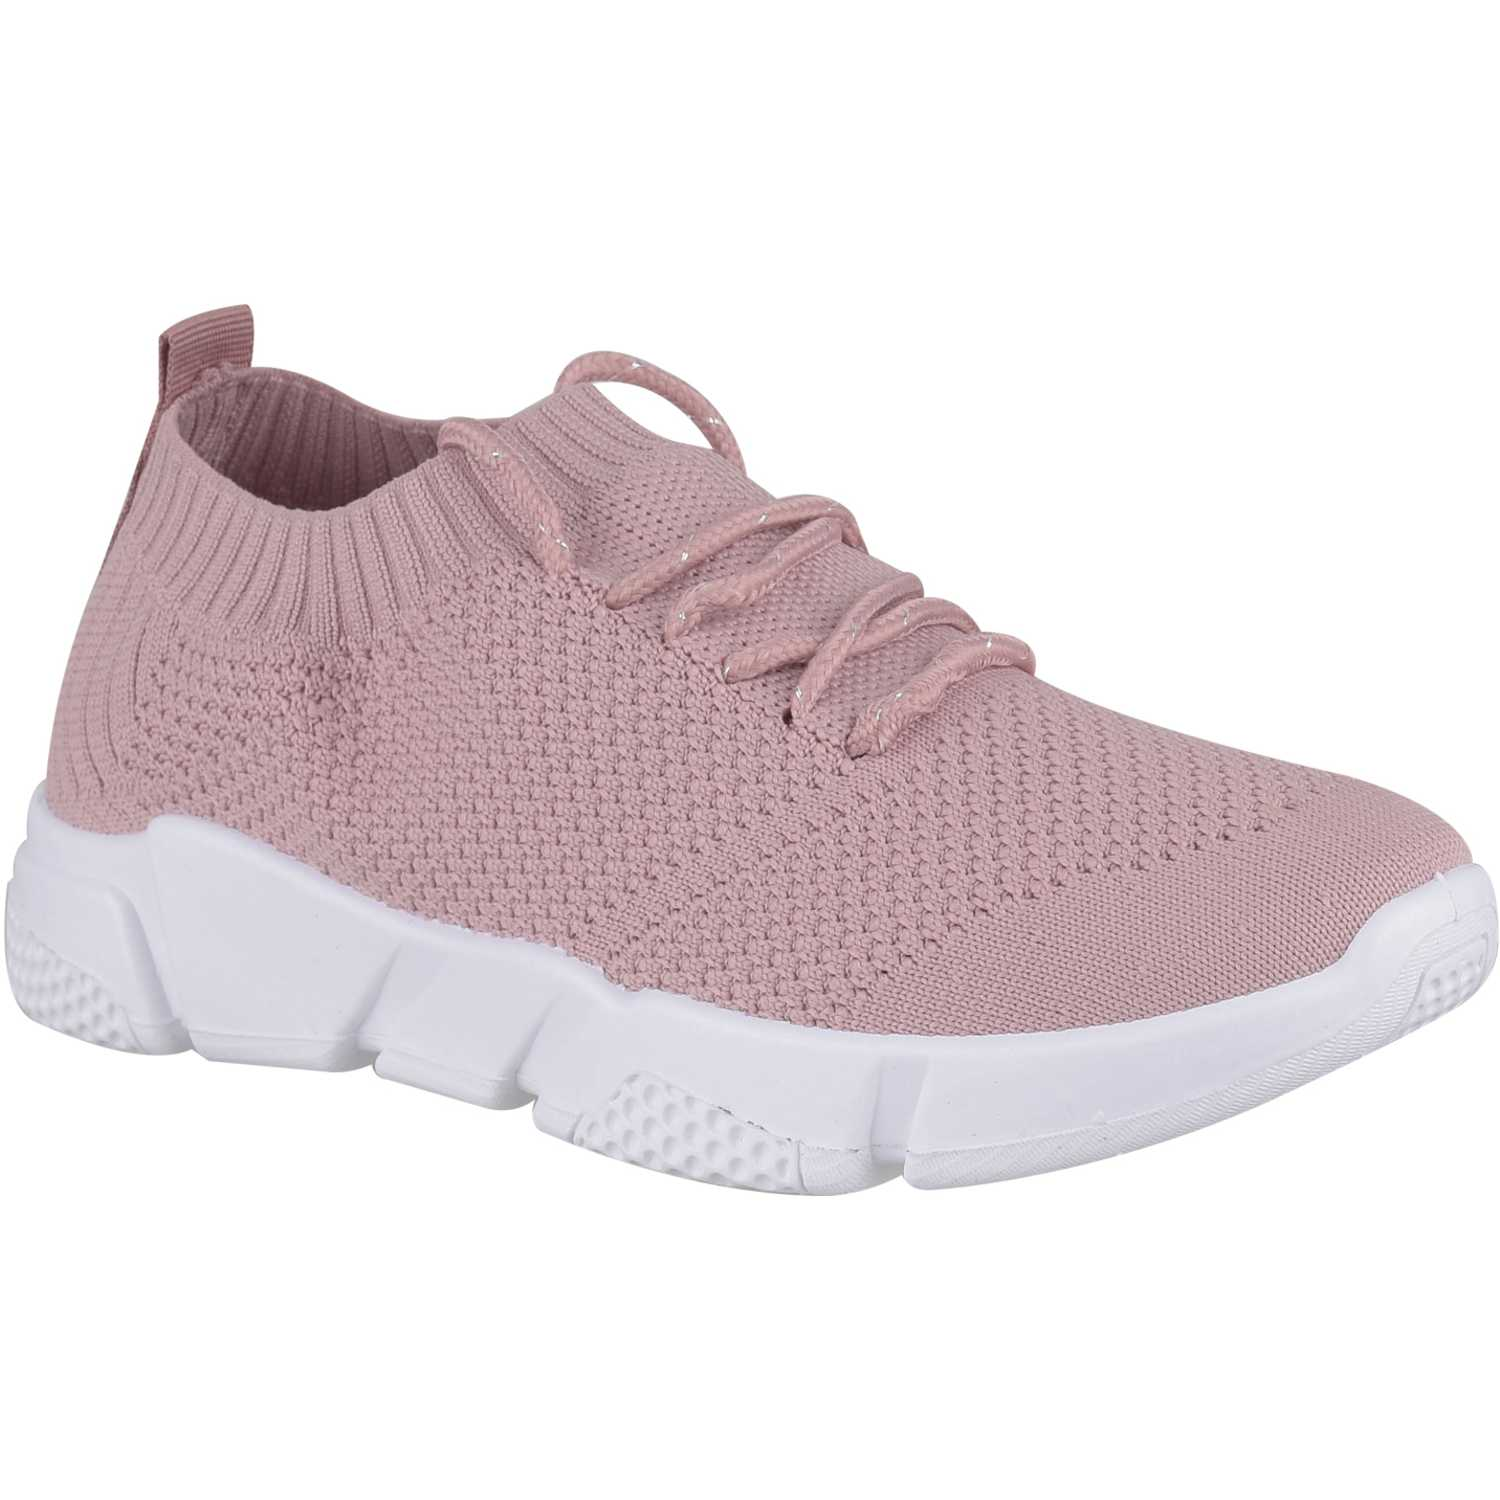 Just4u z 799 Rosado Zapatillas Fashion